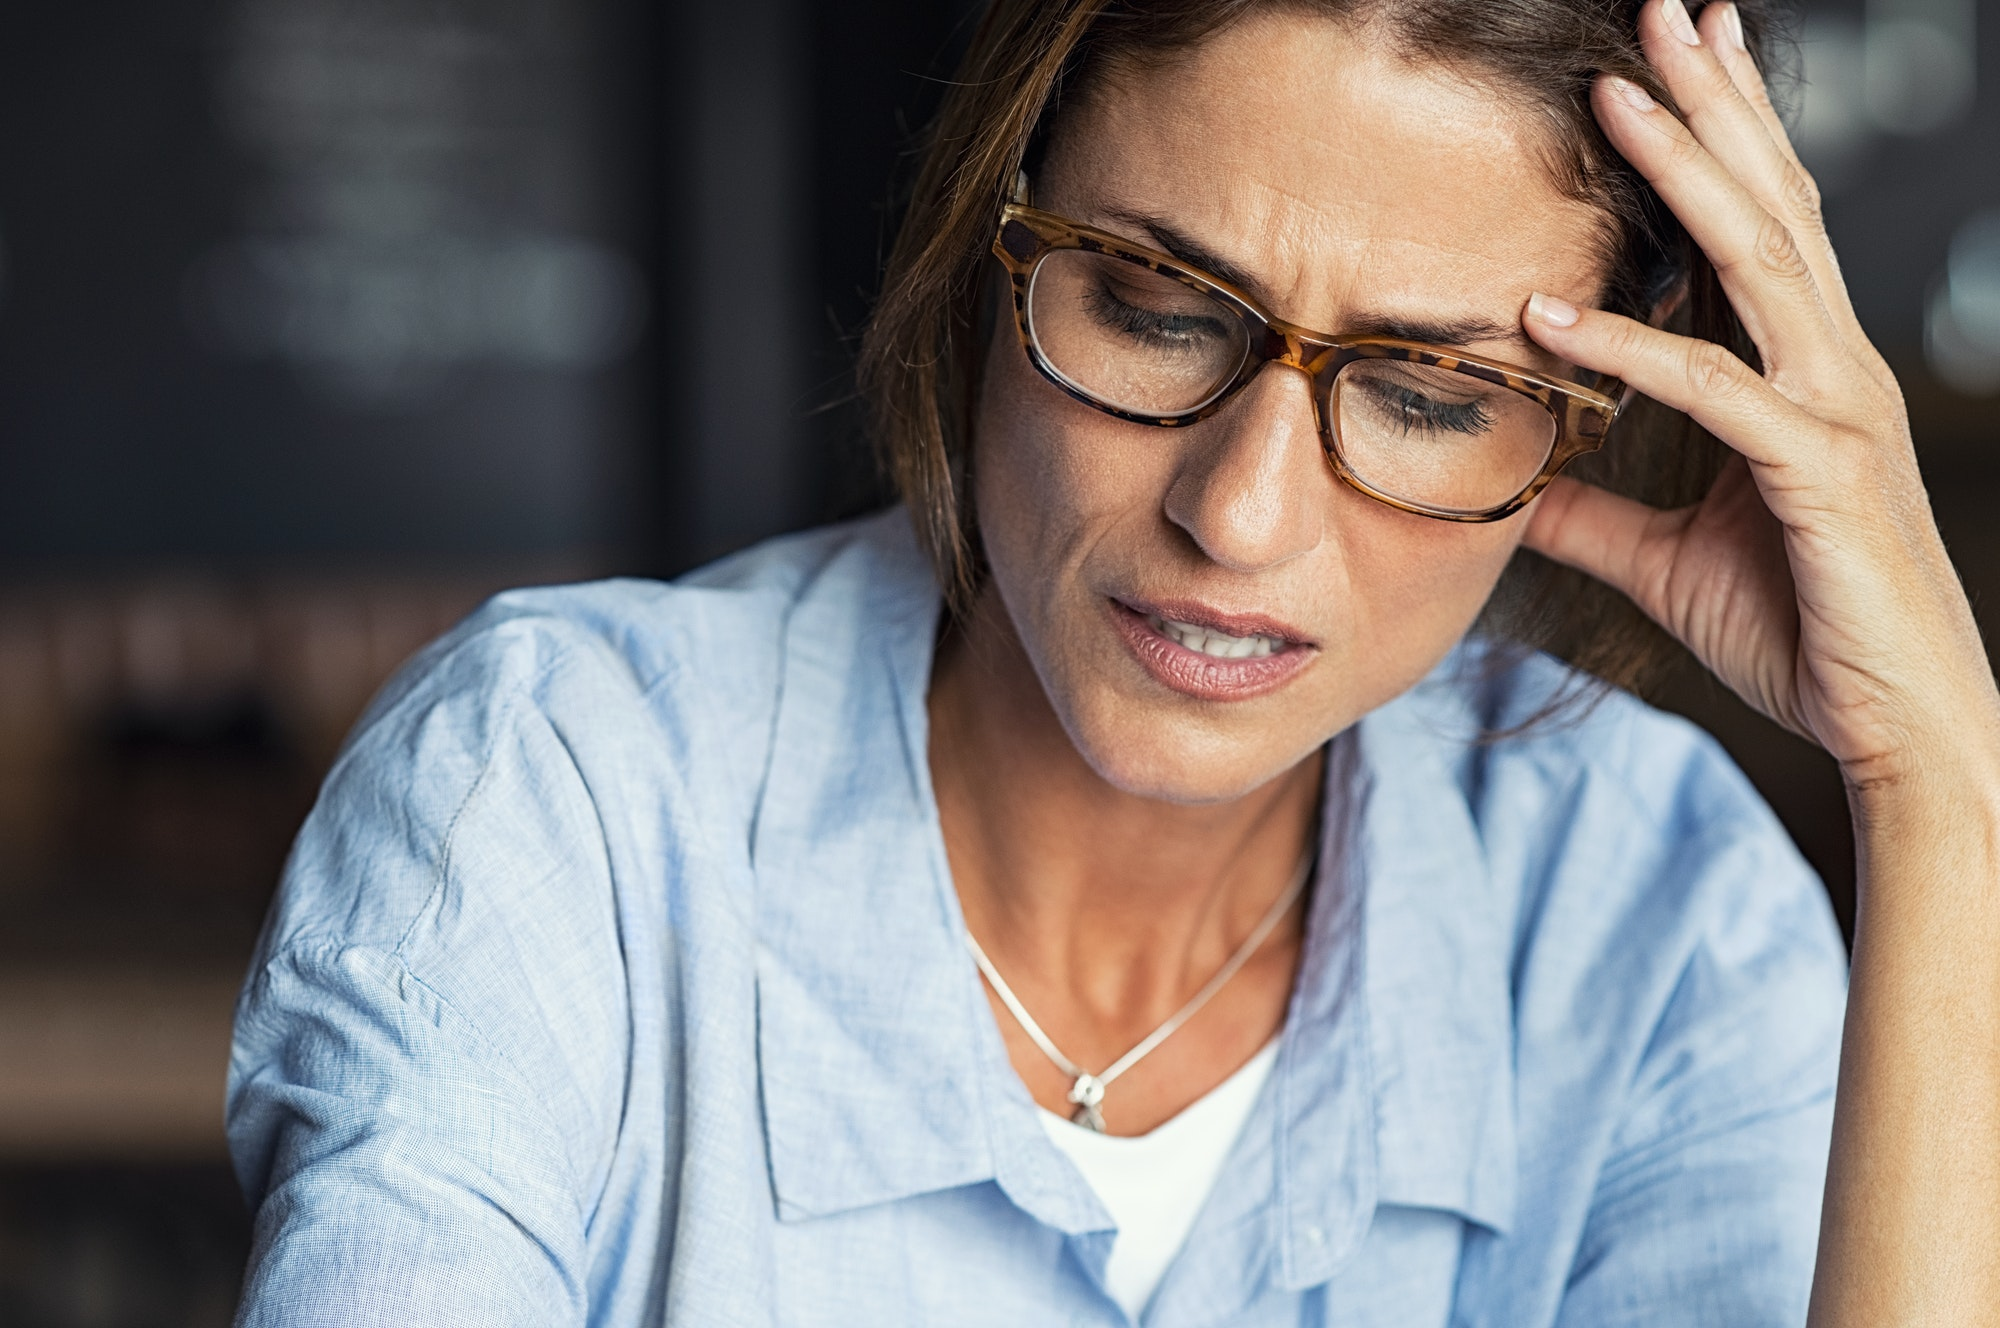 Stressed woman wearing eyeglasses